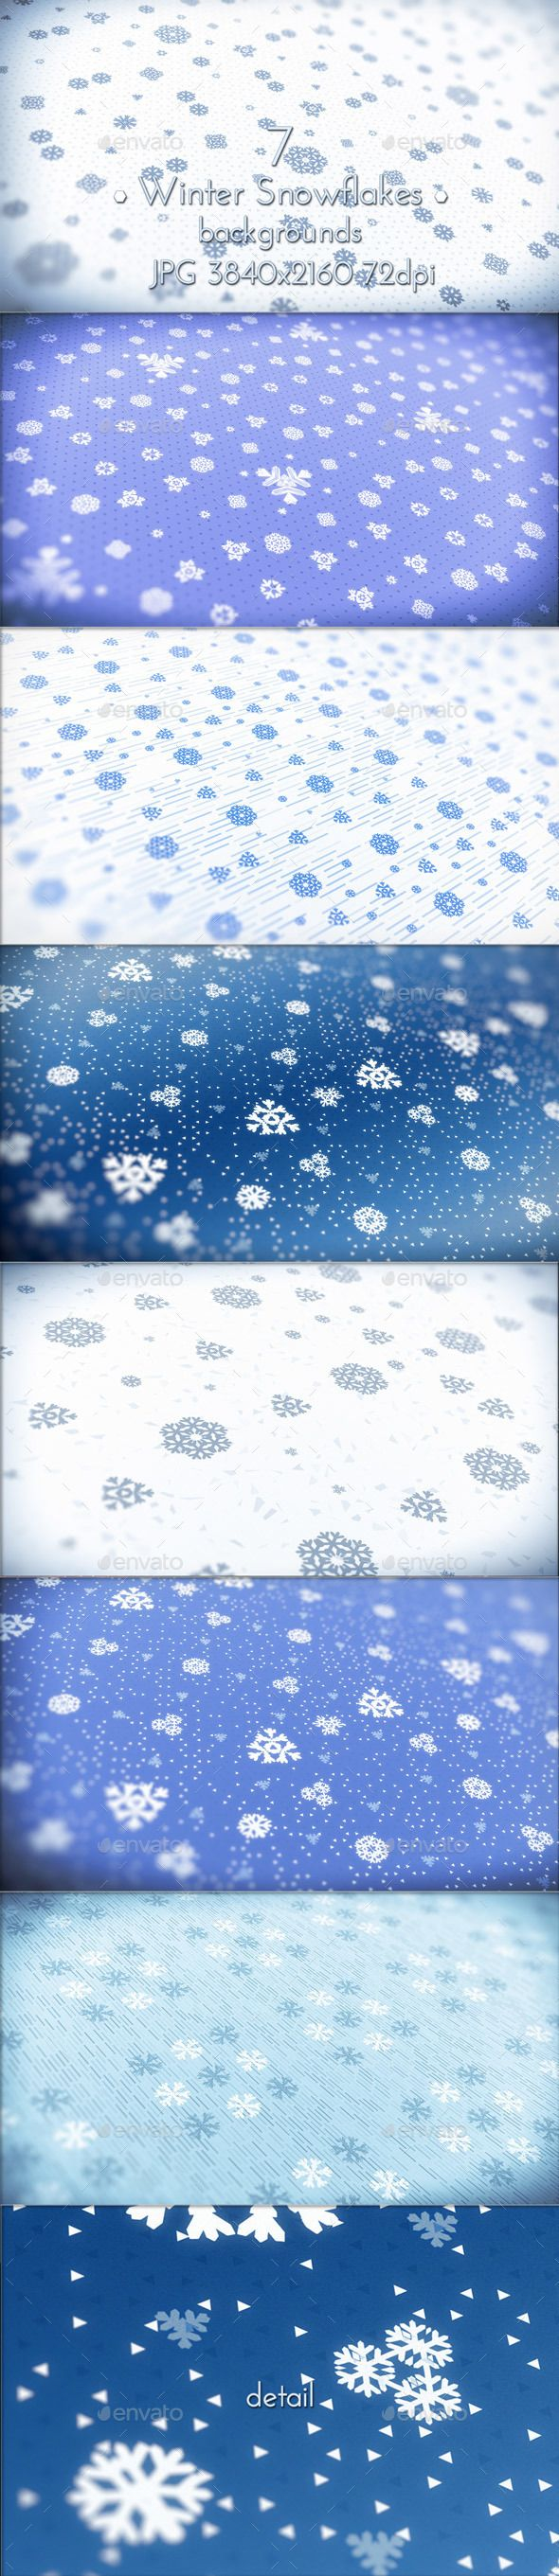 Abstract Blue Tone Winter Snowflakes Pattern Backgrounds.  7 images. Jpeg 3840×2160 (16:9 format) 72 dpi.